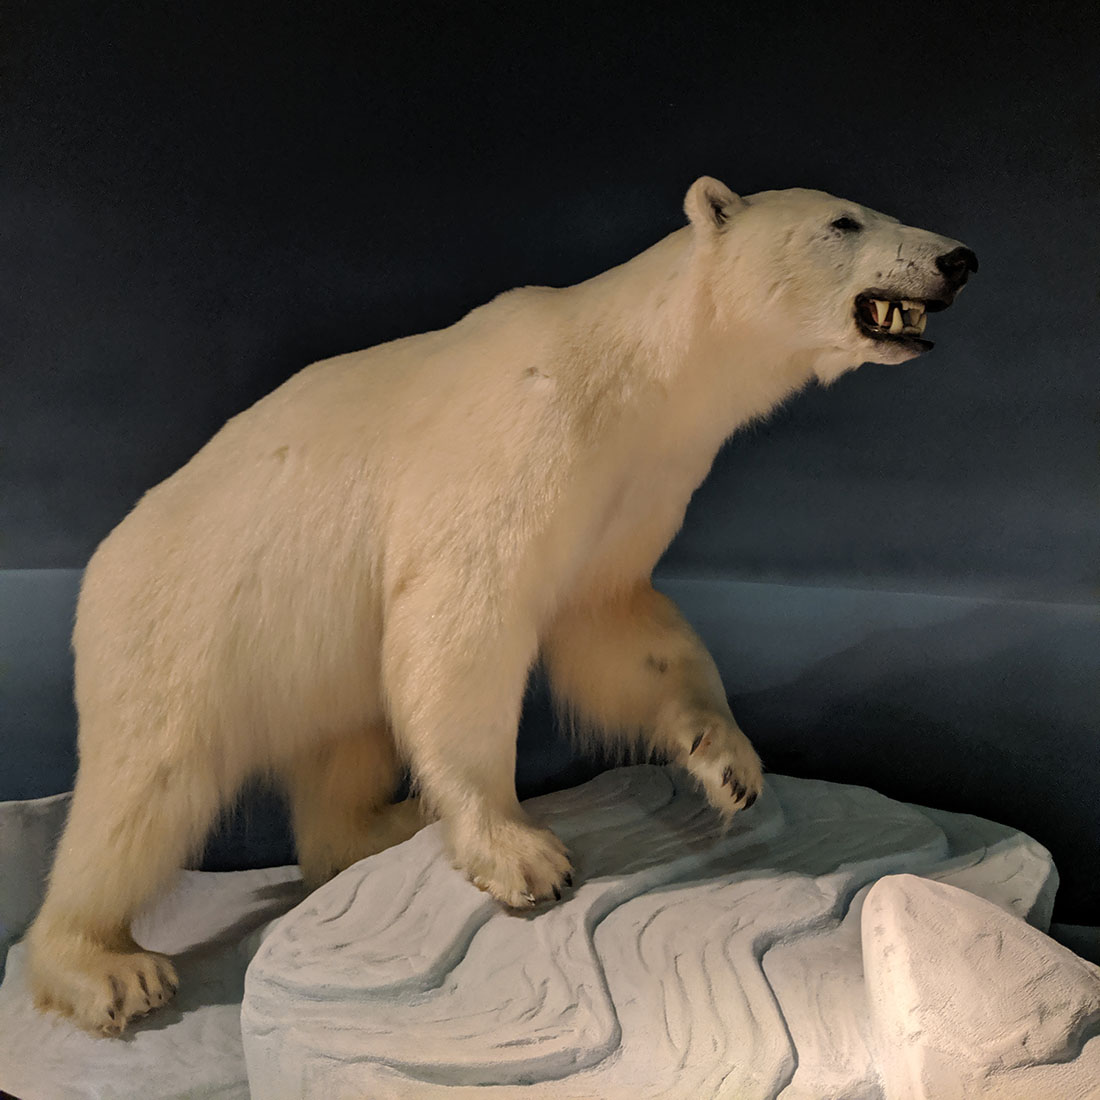 The rooms polar bear